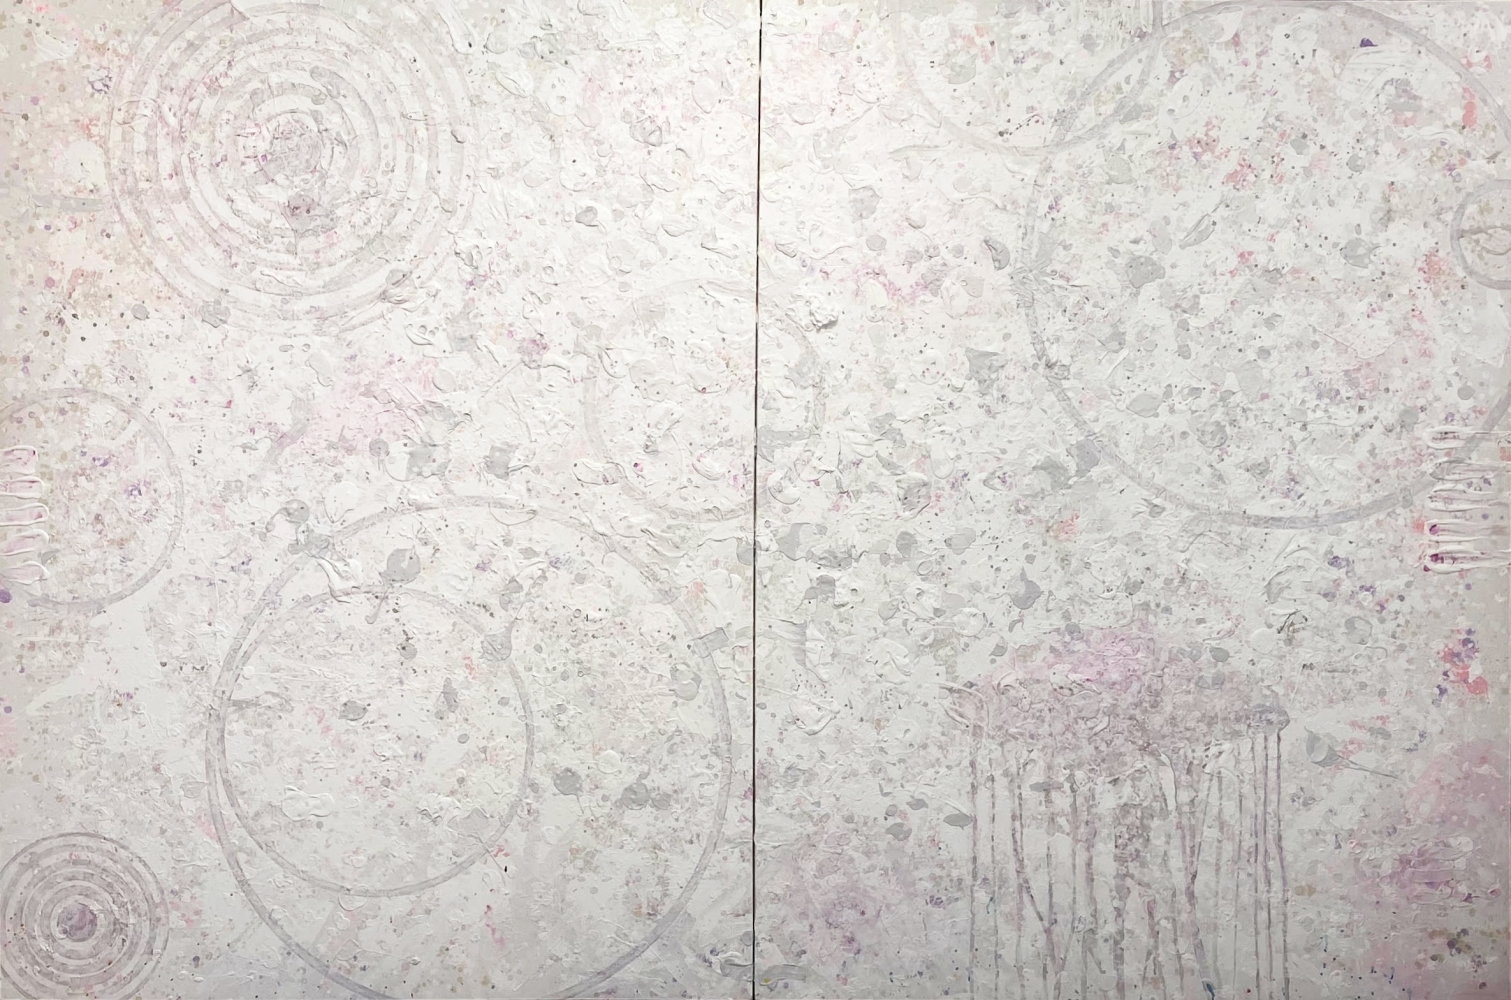 J. Steven Manolis, White on White (Peonies), 2017, Acrylic and Latex enamel on canvas, 72 x 120 inches, white abstract art, extra large abstract art